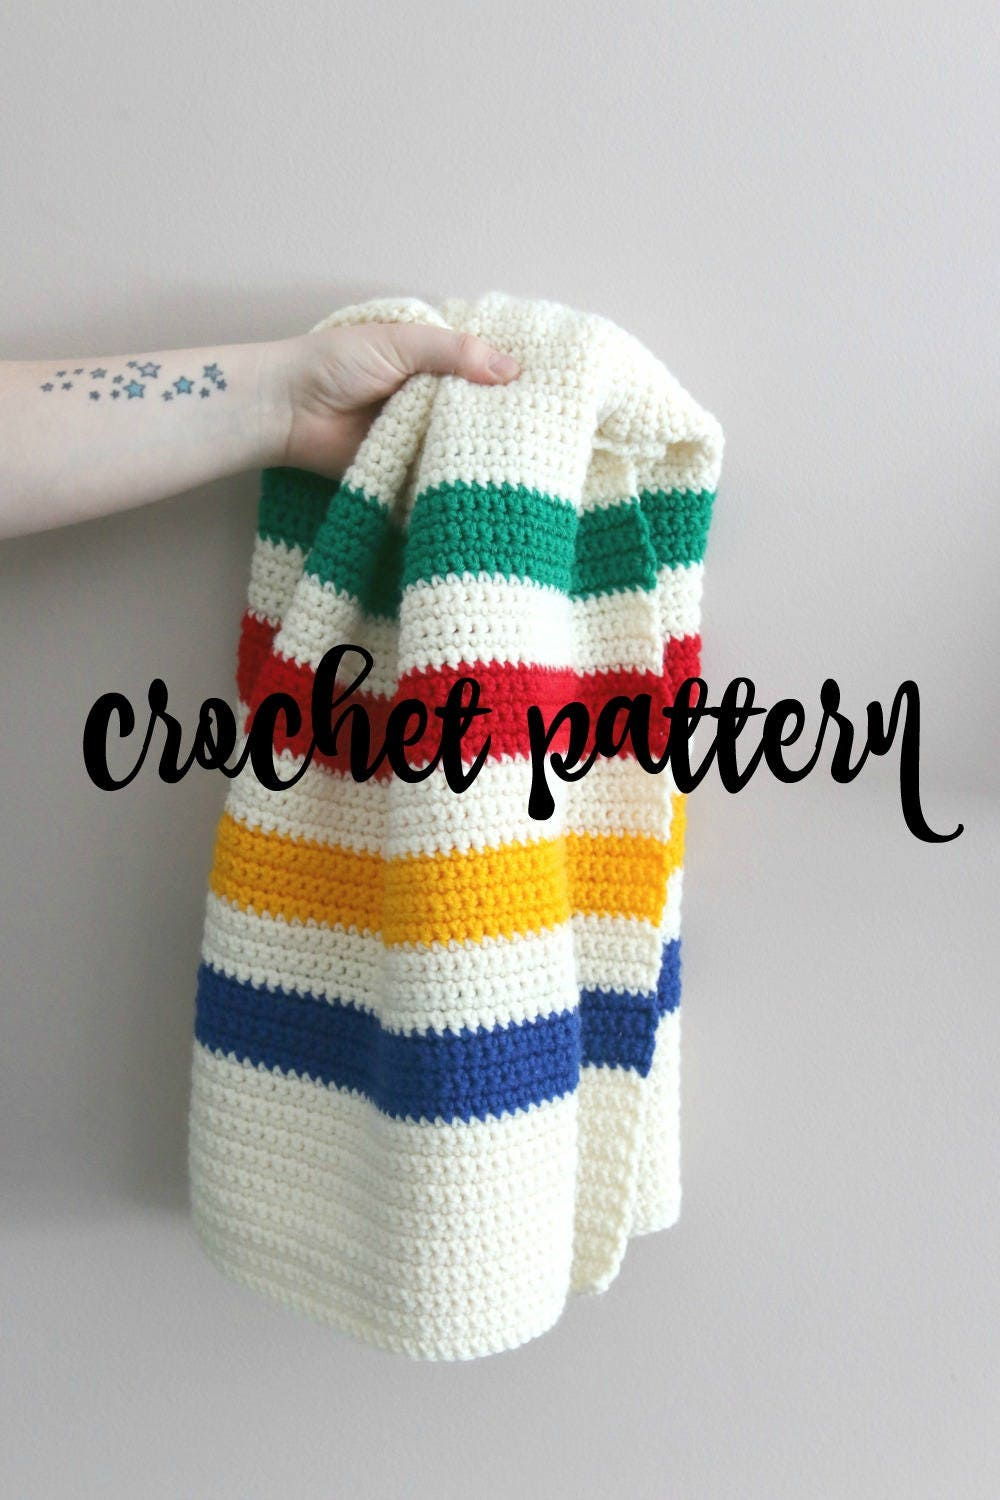 Hudson bay blanket pattern crochet baby blanket pattern zoom bankloansurffo Image collections